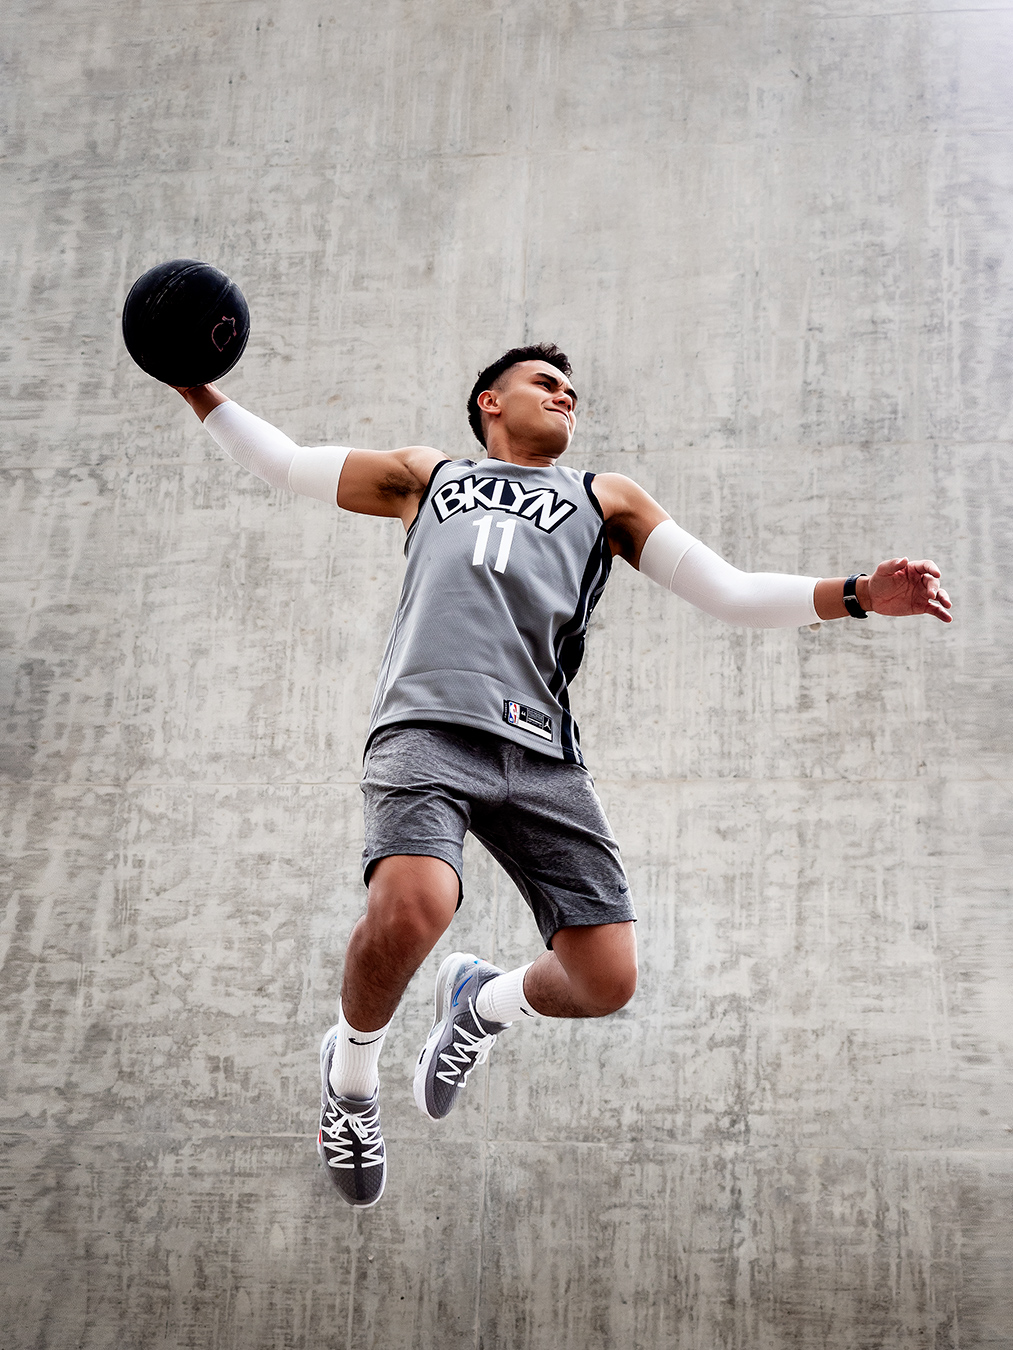 Professional formula one driver Luis slam dunking a basketball